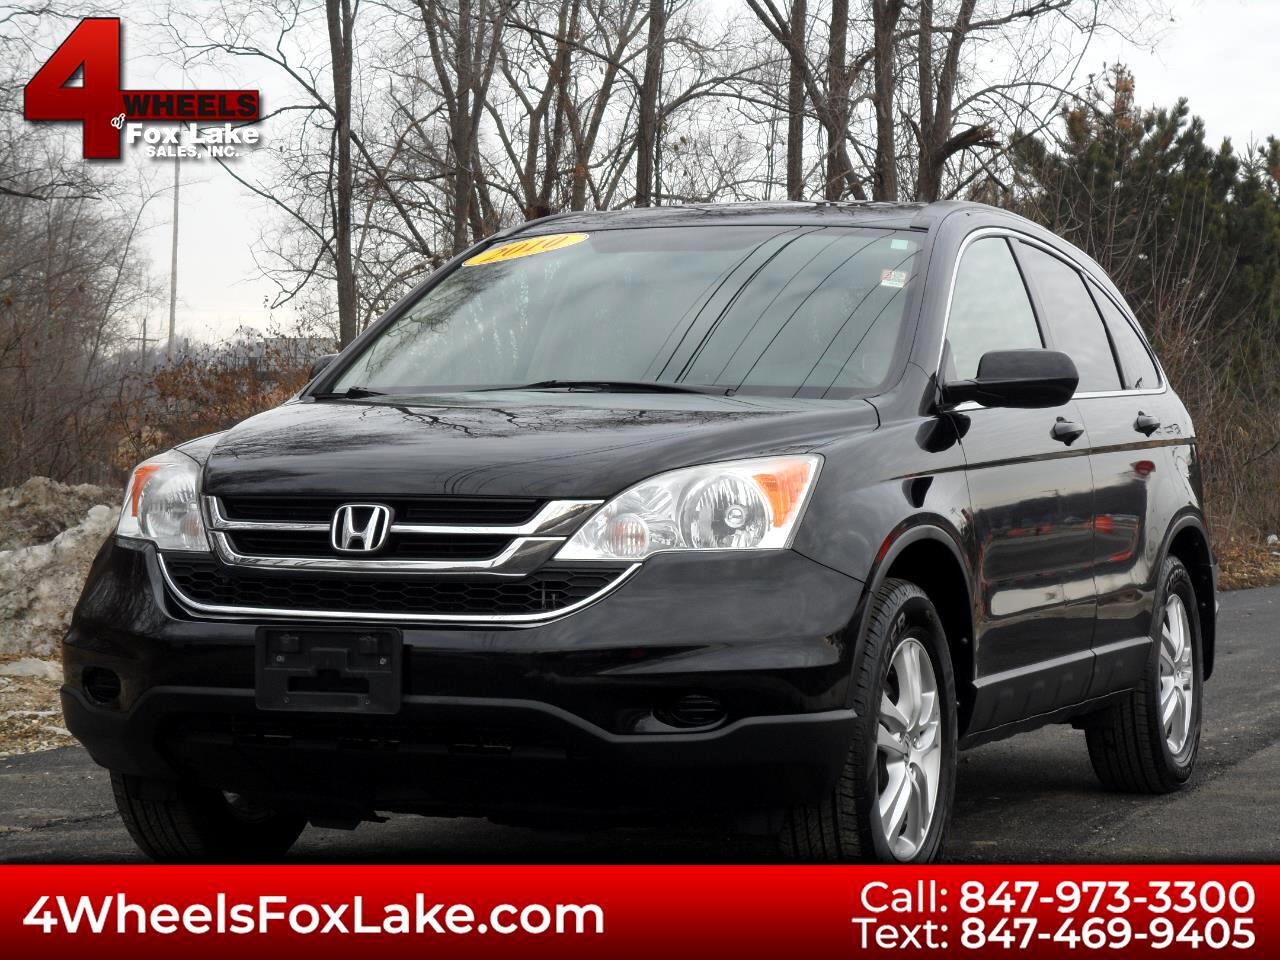 2010 Honda CR-V EX-L 4WD 5-Speed AT